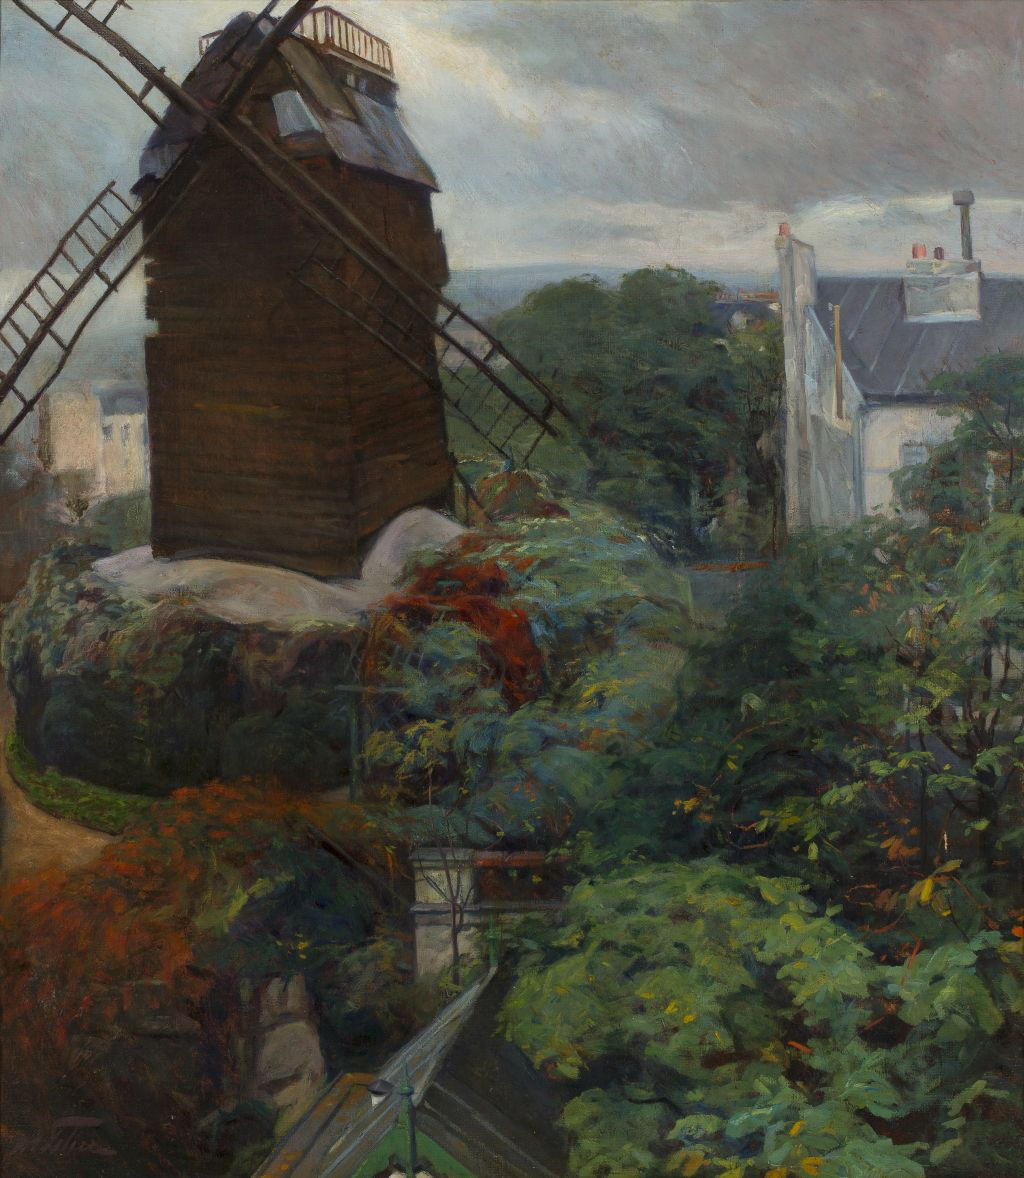 The Moulin de la Galette from the painter's studio, Manuel Feliu de Lemus